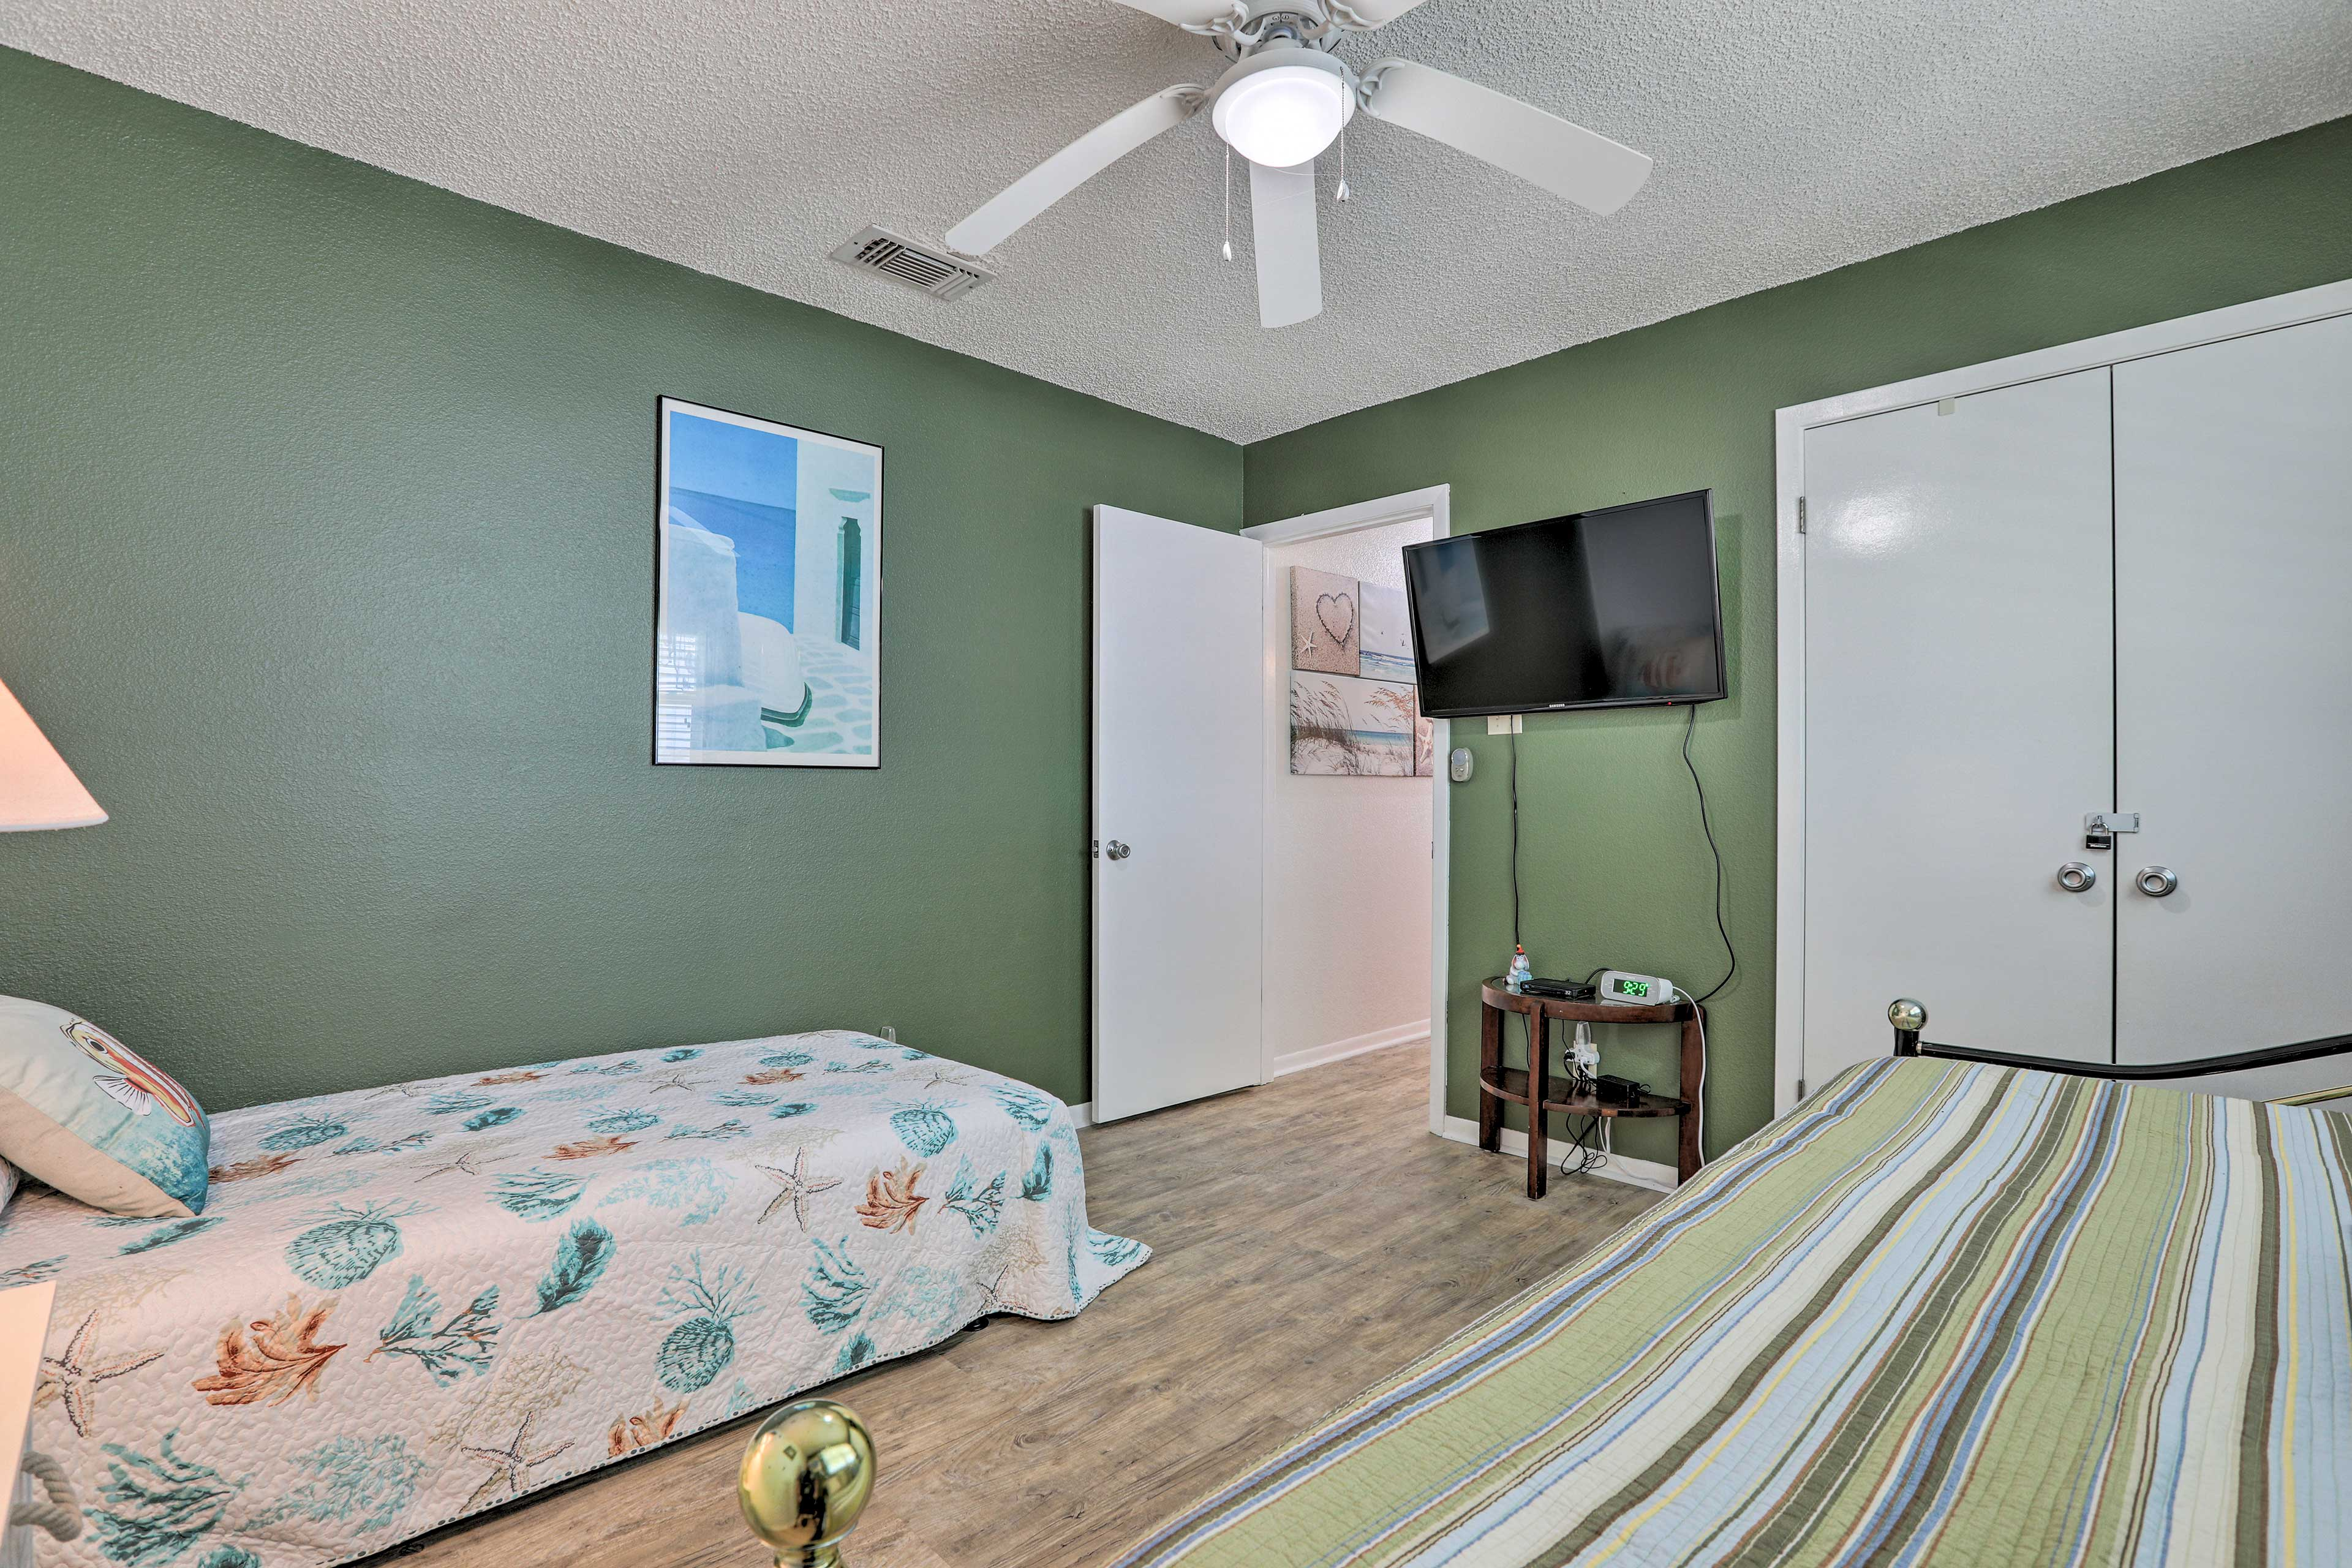 Put the kiddos to bed with a movie on the mounted flat-screen TV!